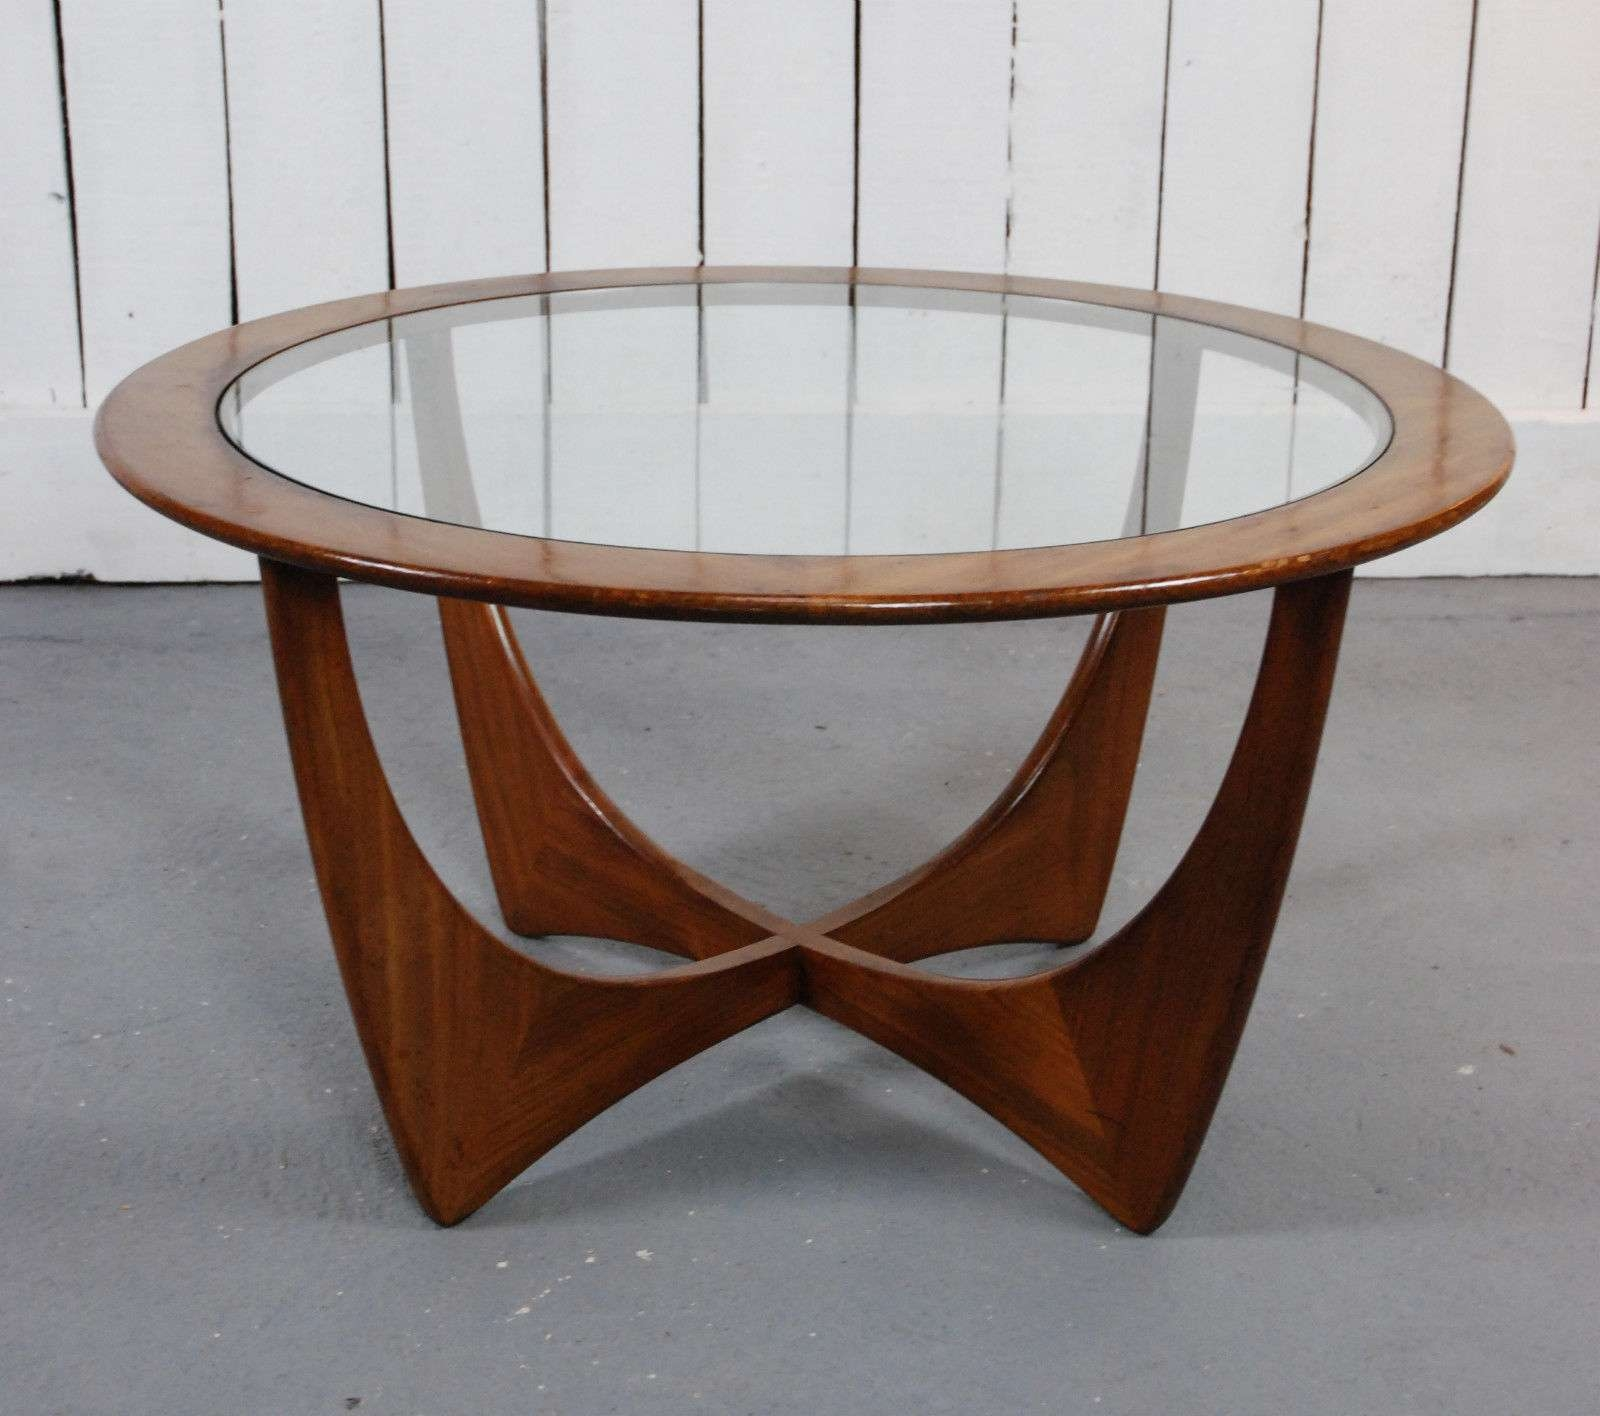 Most Popular Retro Teak Glass Coffee Tables Within Modern Teak Round Coffee Table — New Home Design : Making Teak (View 11 of 20)